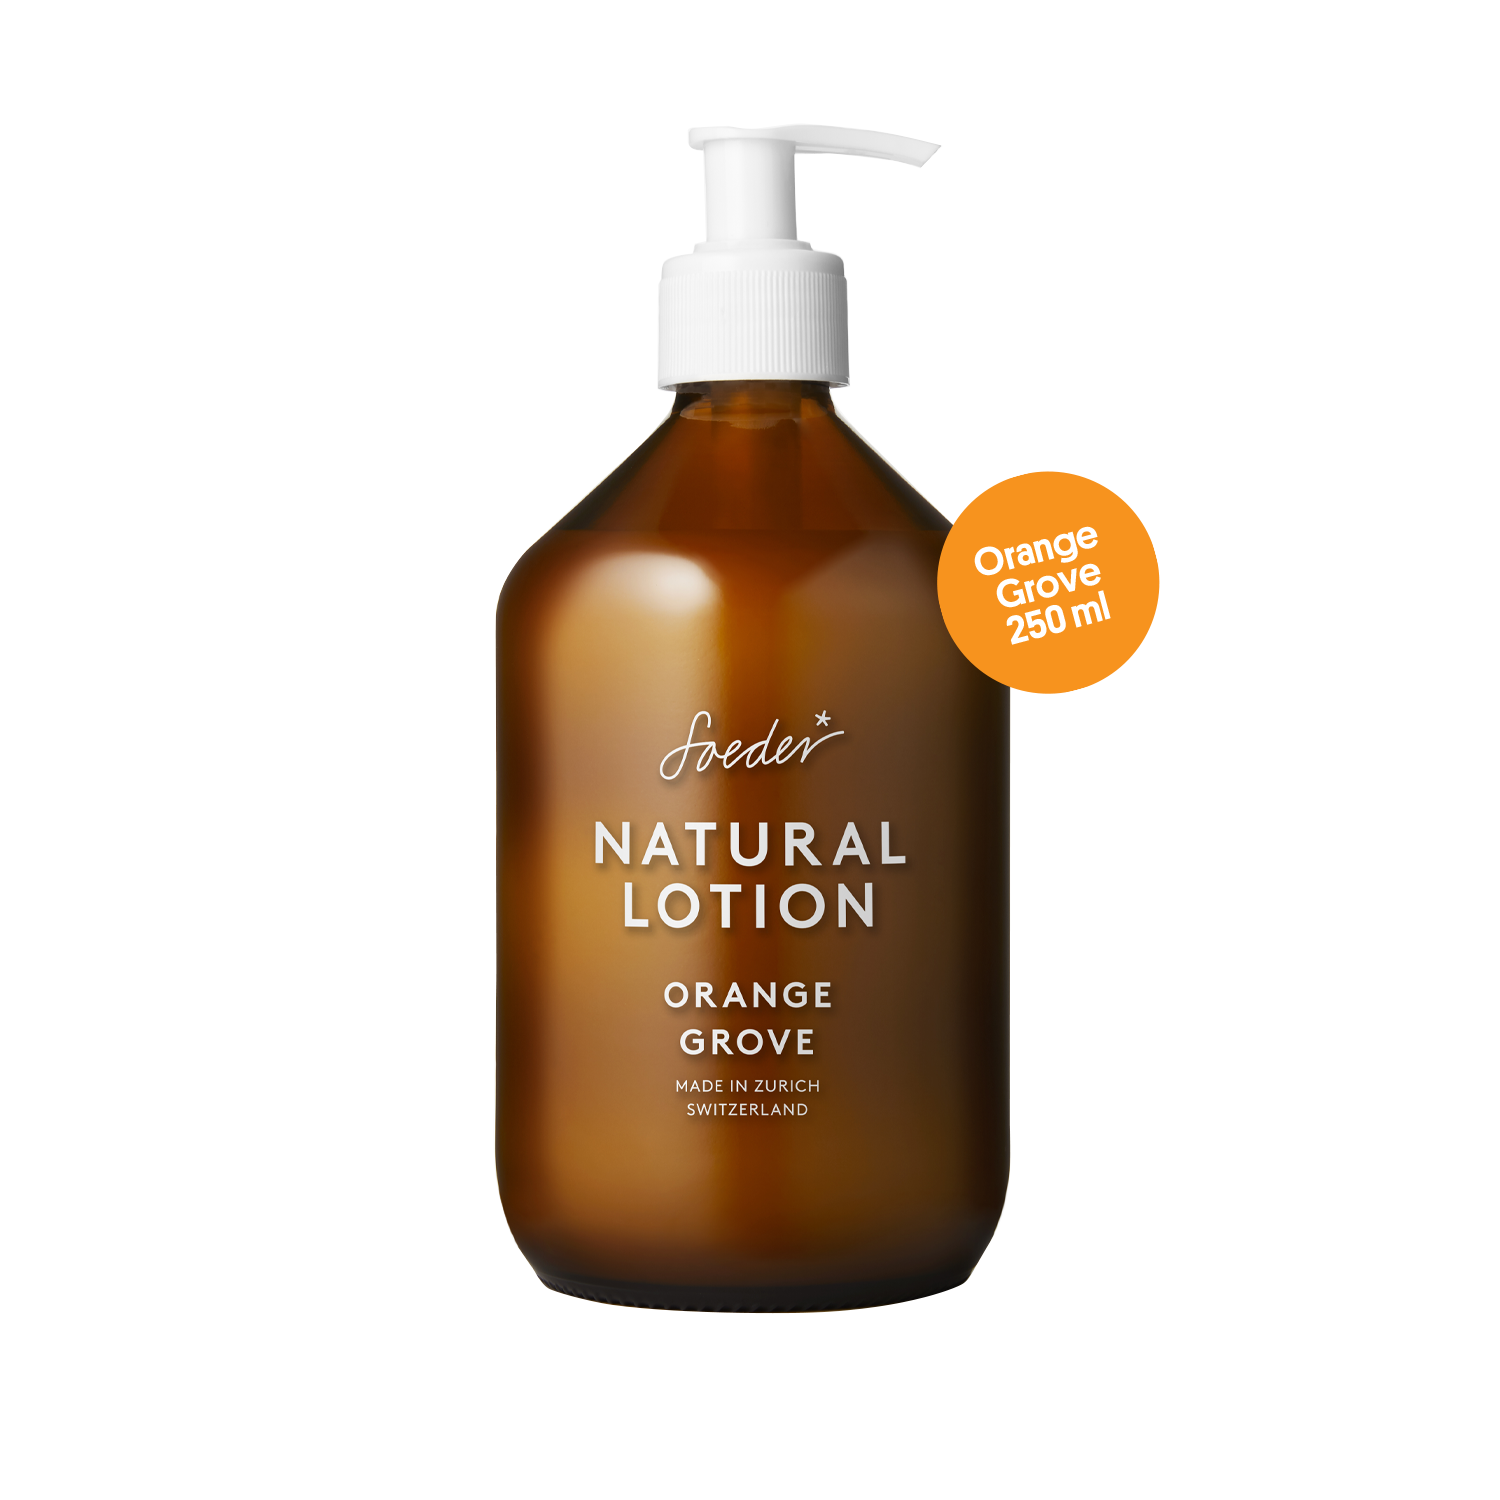 Natural Lotion – Orange Grove 500 ml von soeder*